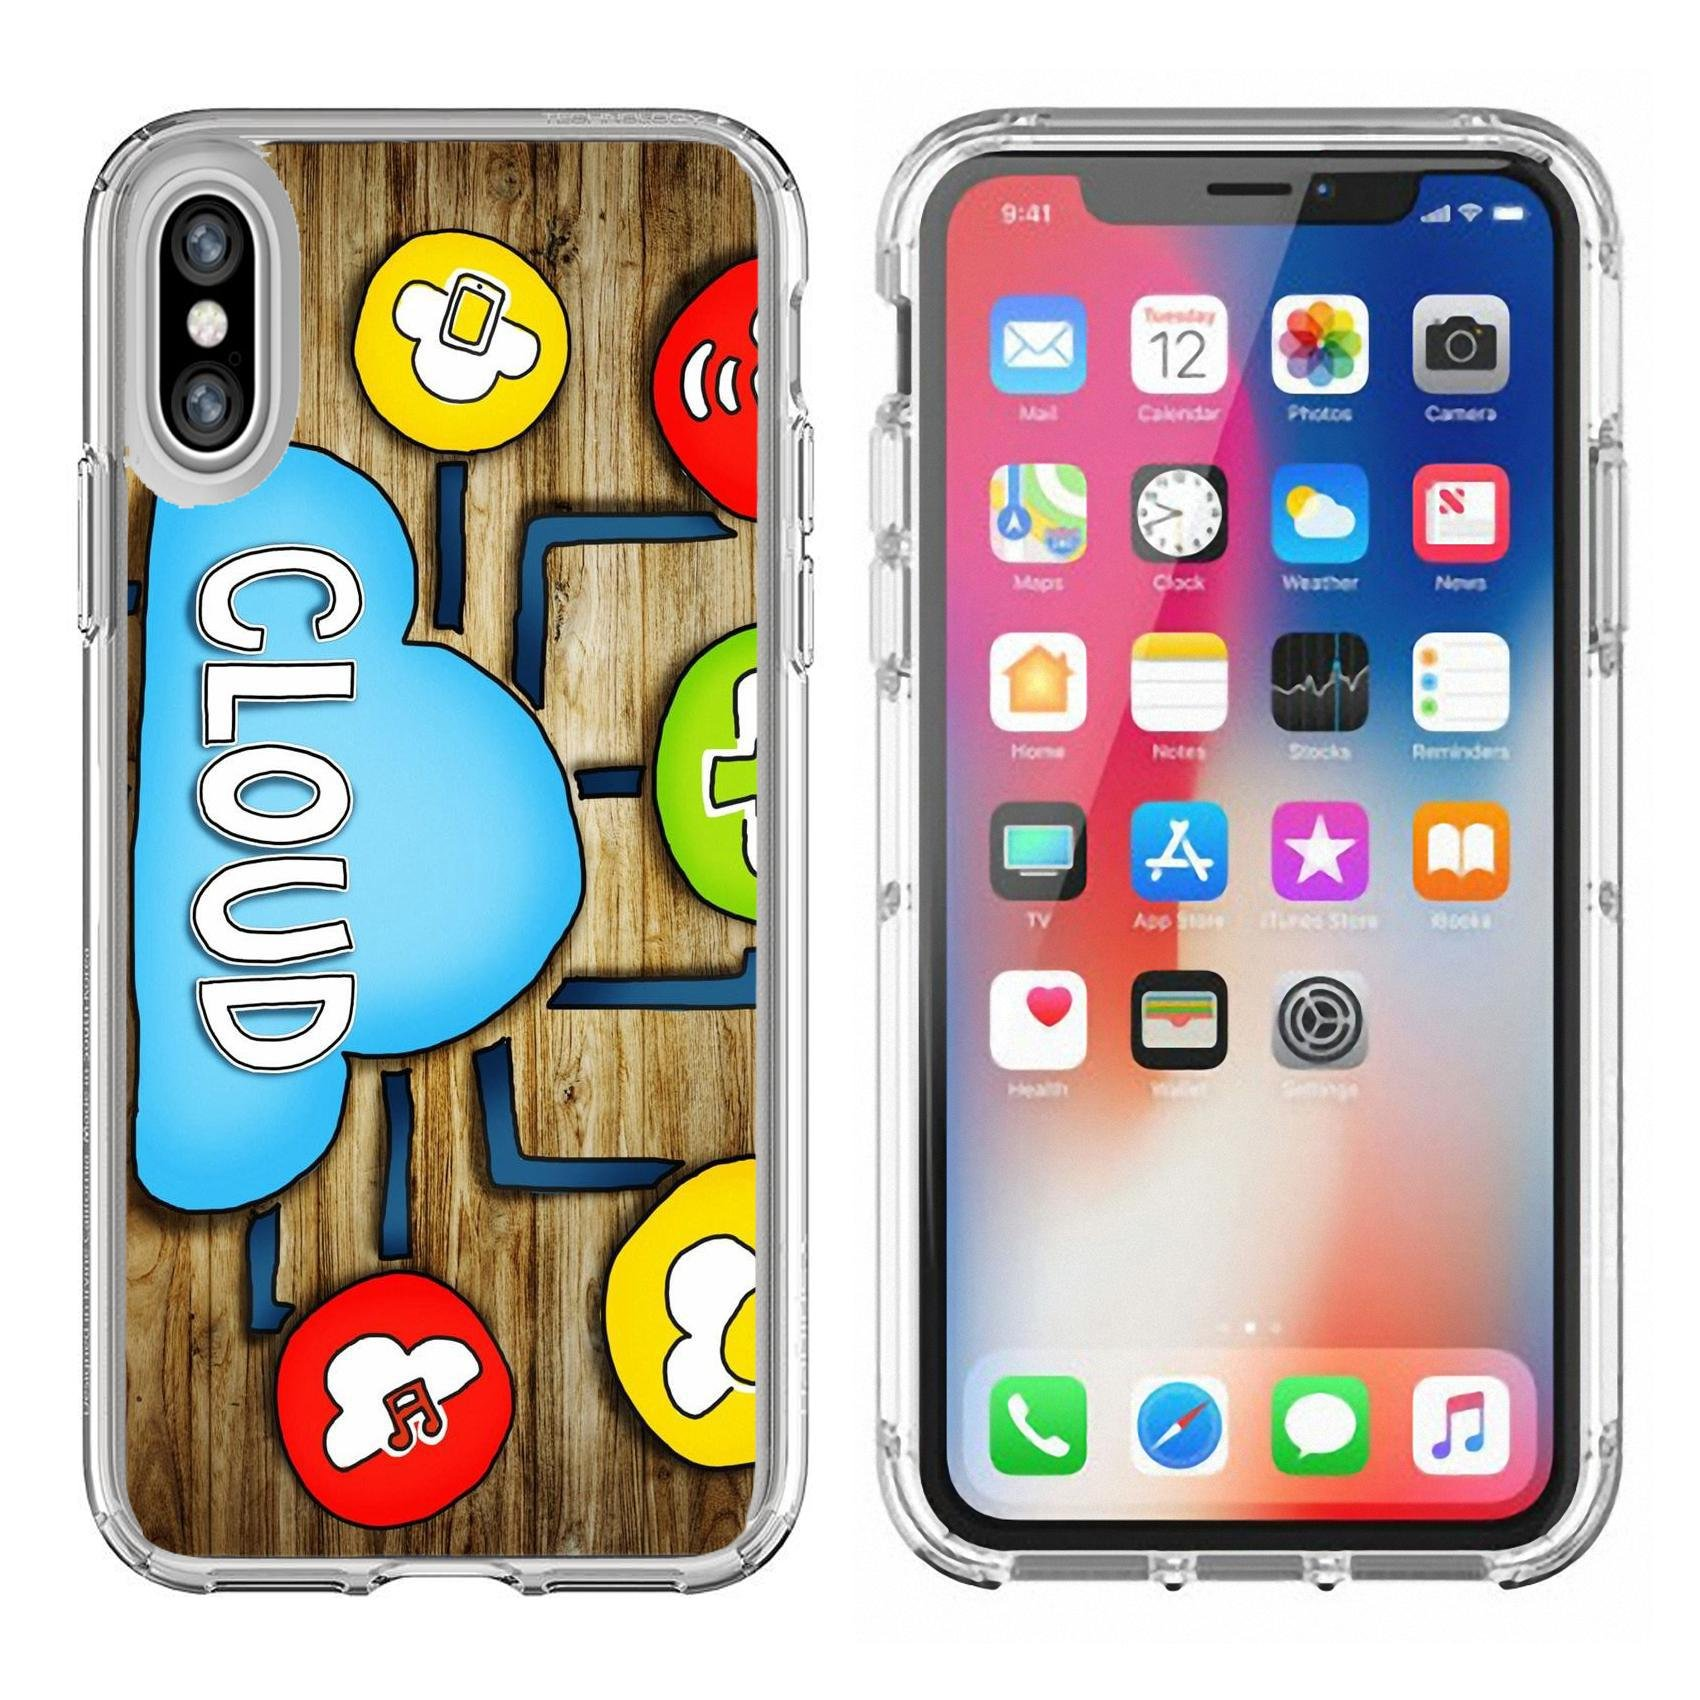 Luxlady Apple iPhone X Clear case Soft TPU Rubber Silicone Bumper Snap Cases iPhoneX IMAGE ID: 34402076 Aerial View of People and Cloud Computing Concepts by Luxlady